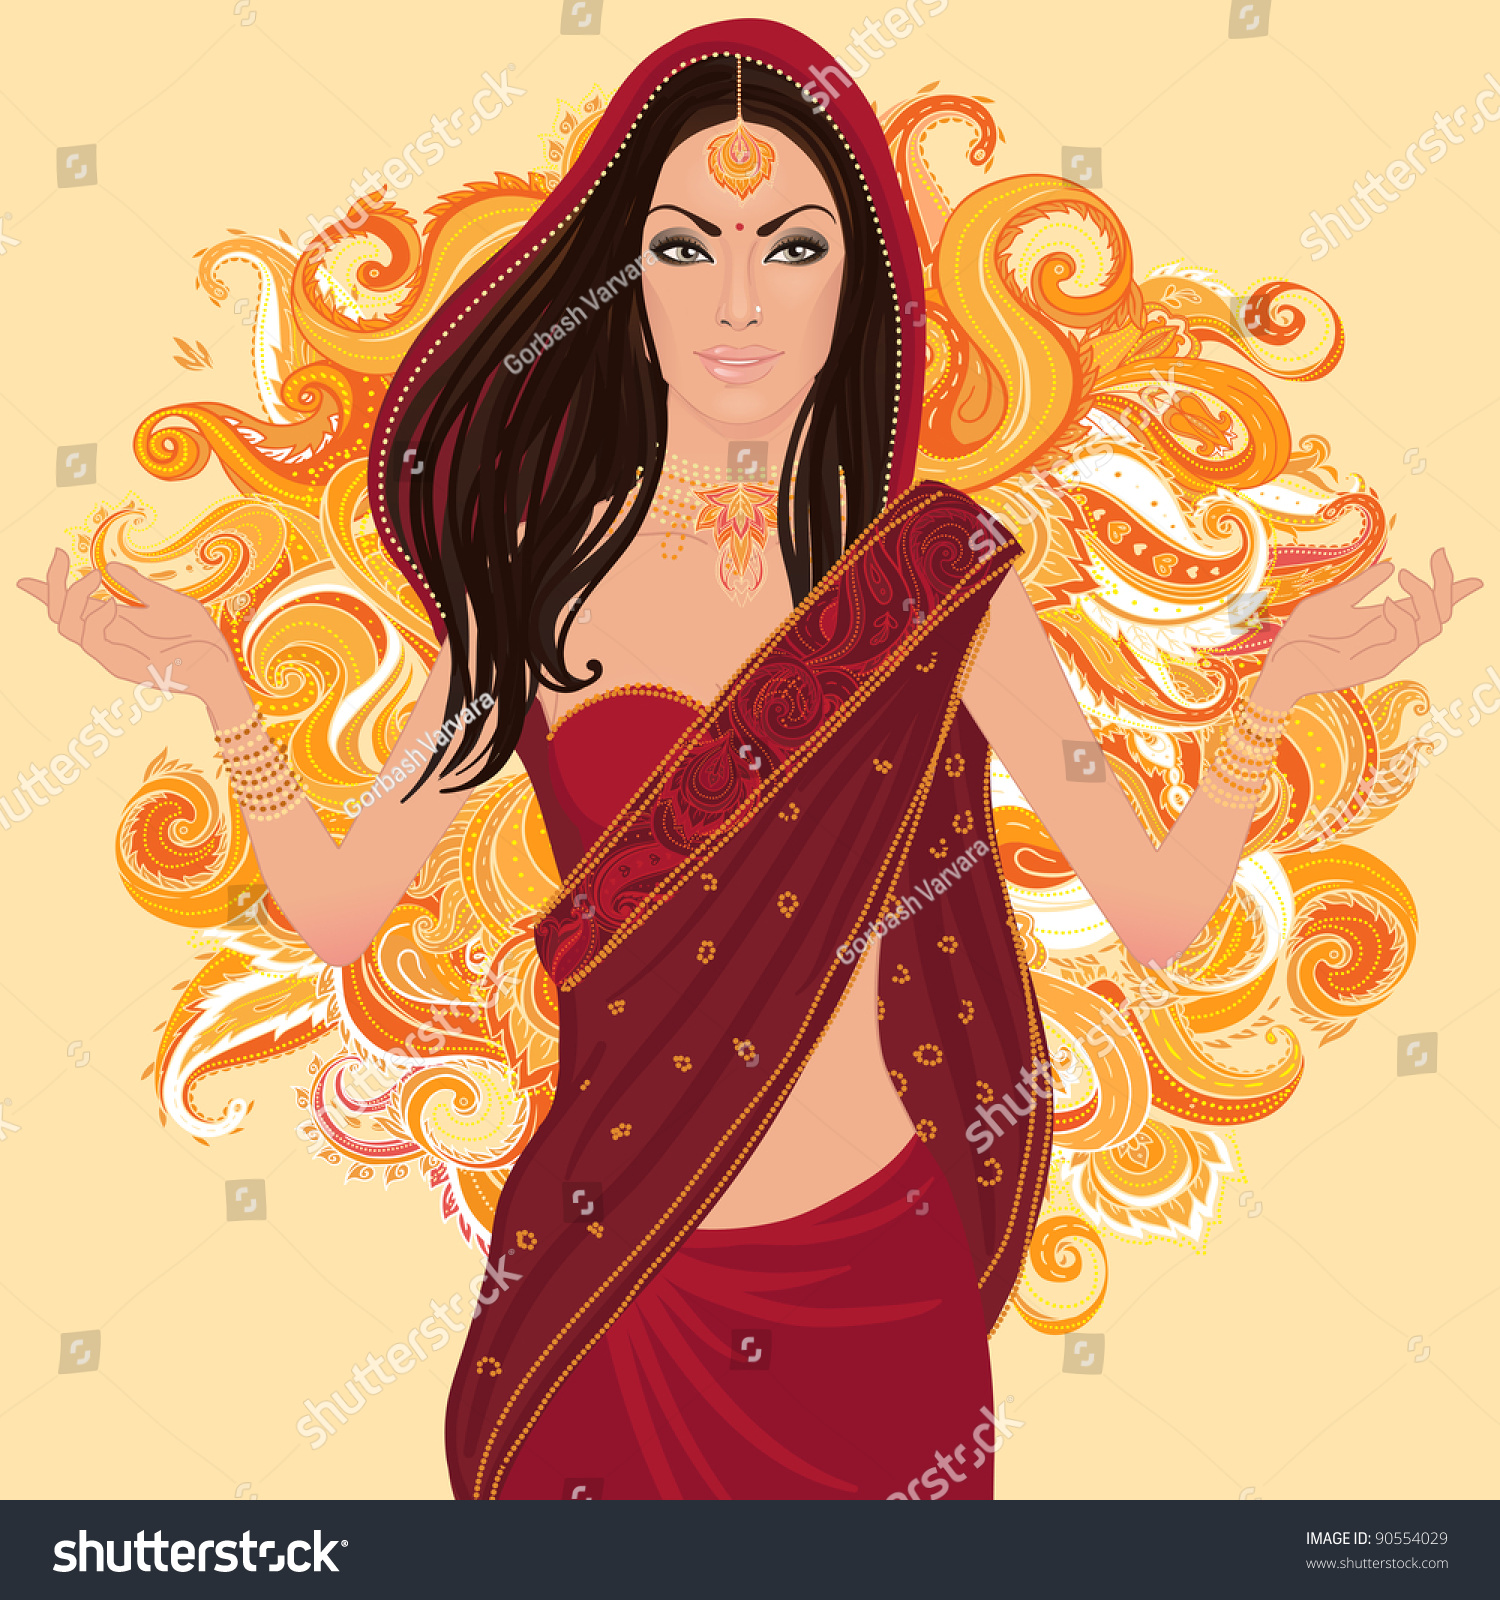 Beautiful Indian Brunette Young Woman Colorful Stock Vector 90554029 Shutterstock